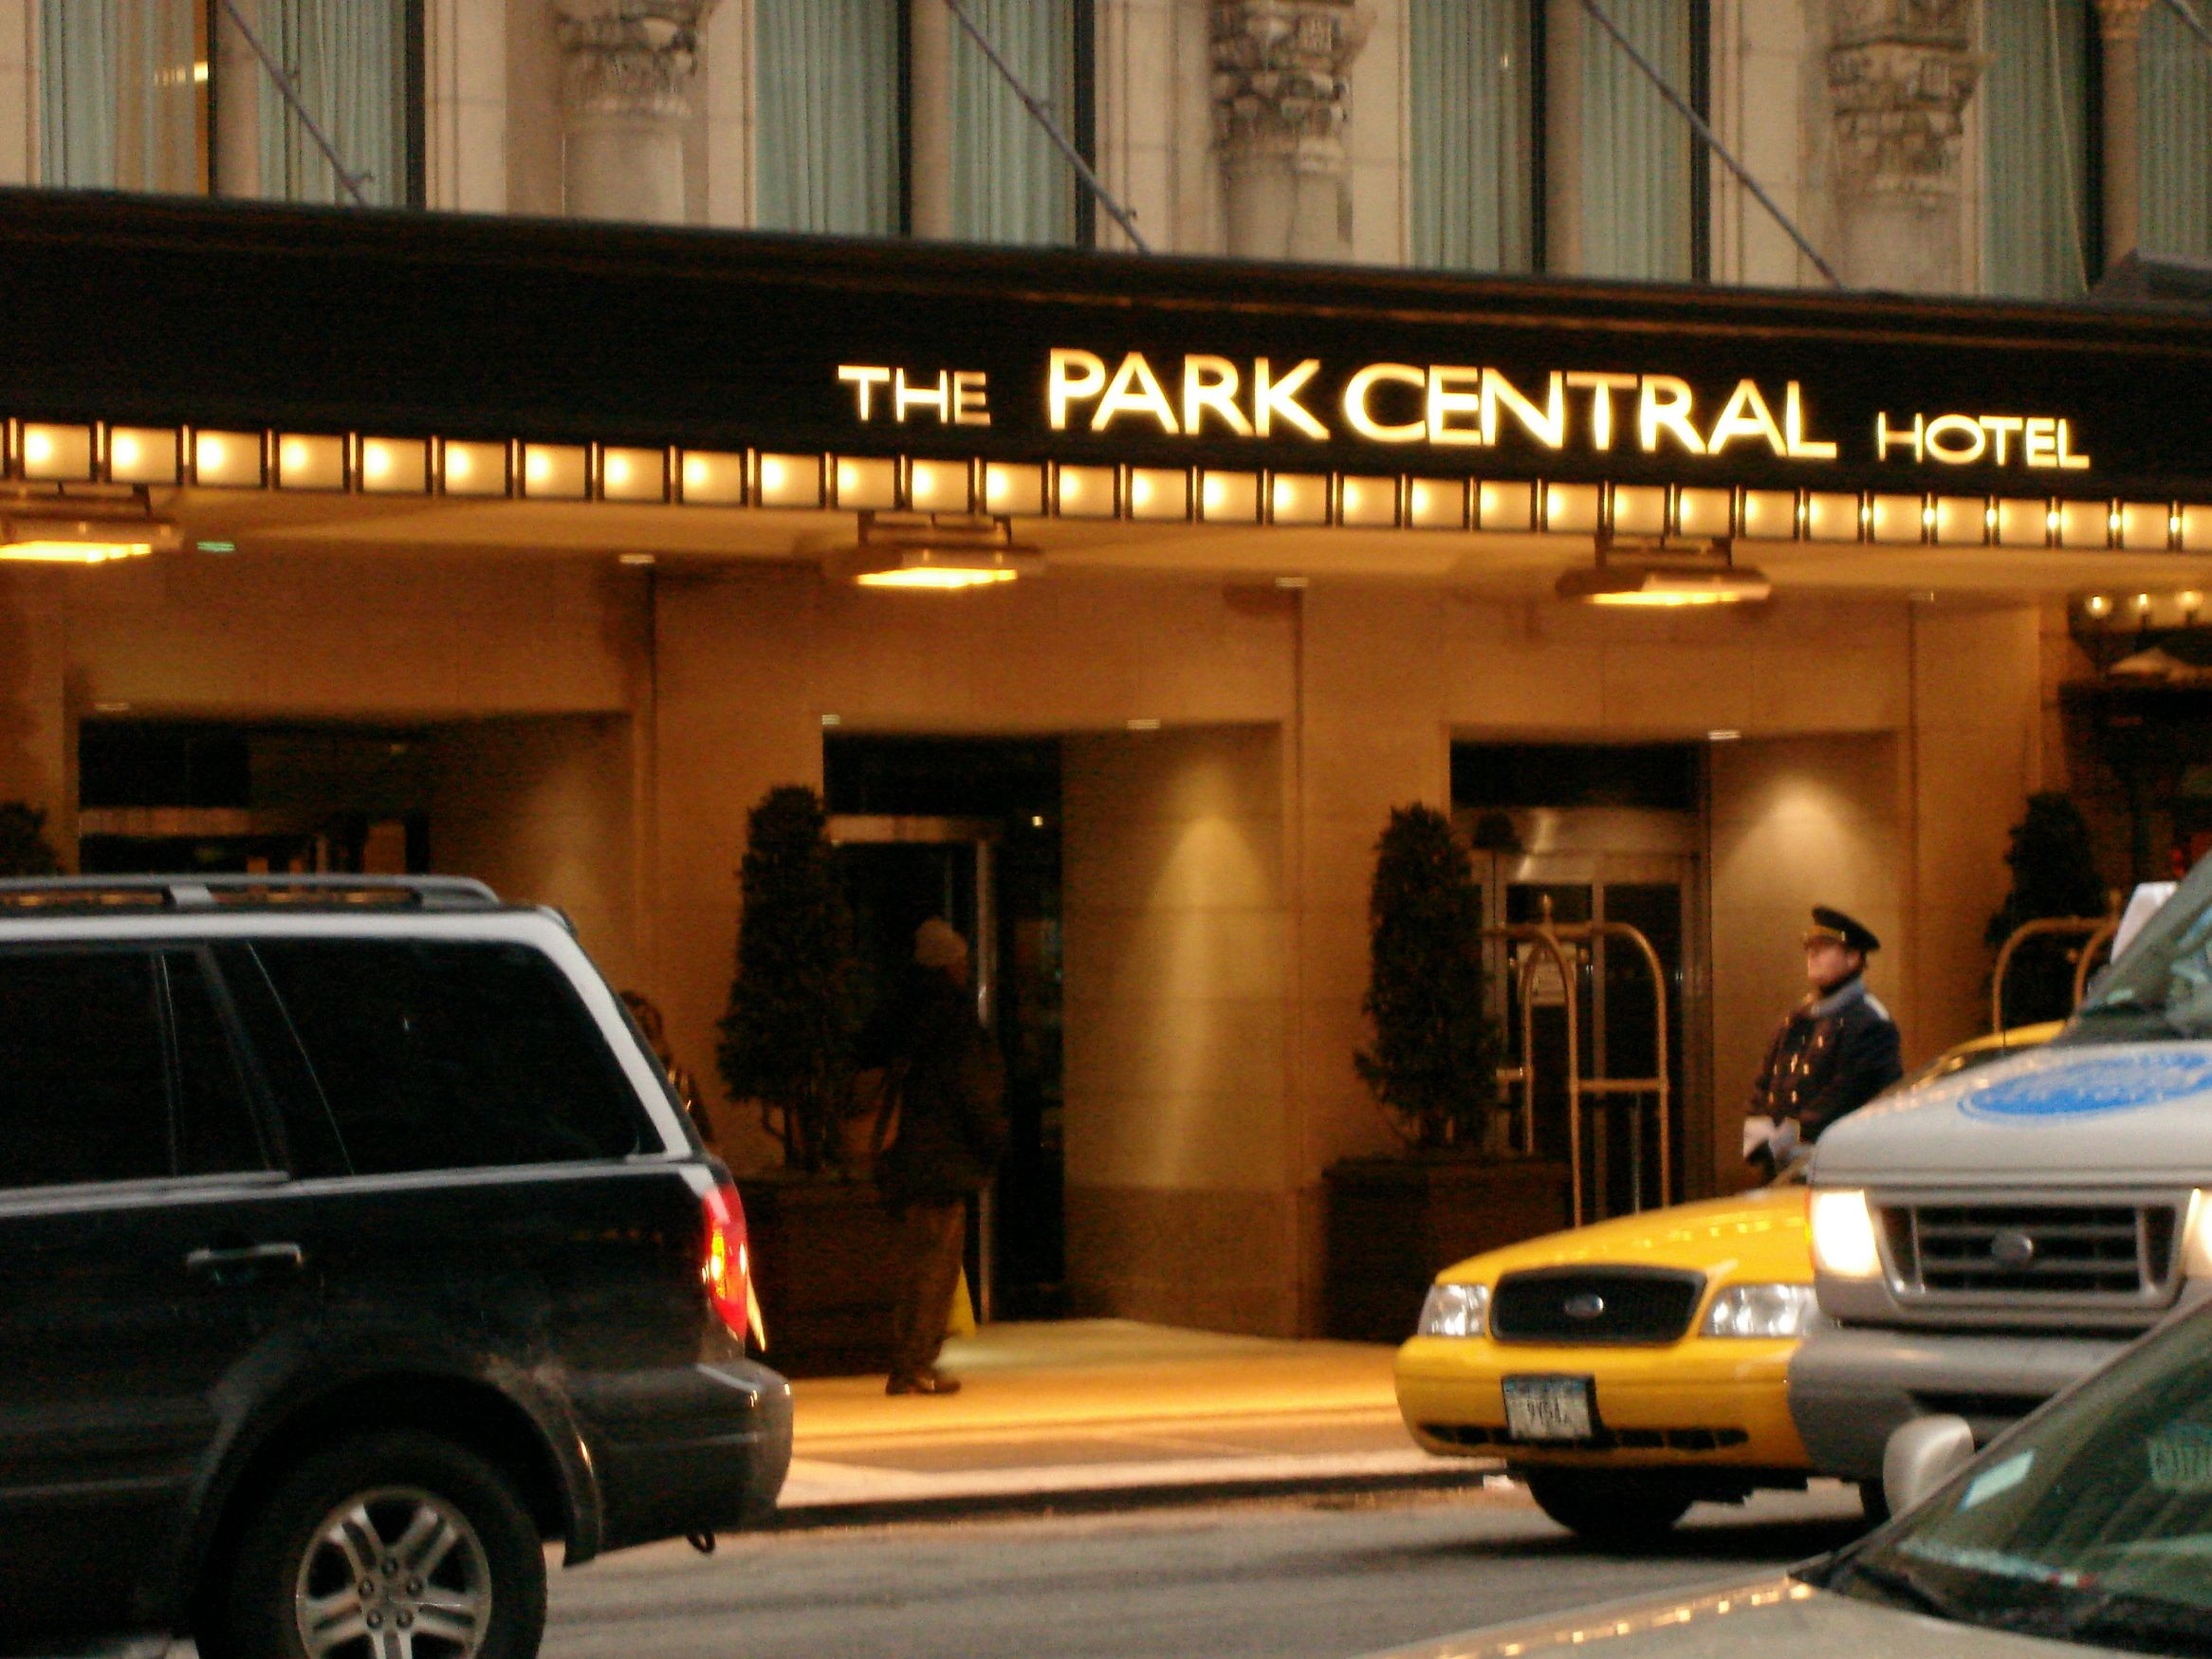 Park Central Hotel New York Ny Great Location Near Carnegie Hall And Just A Short Walk To Times Square